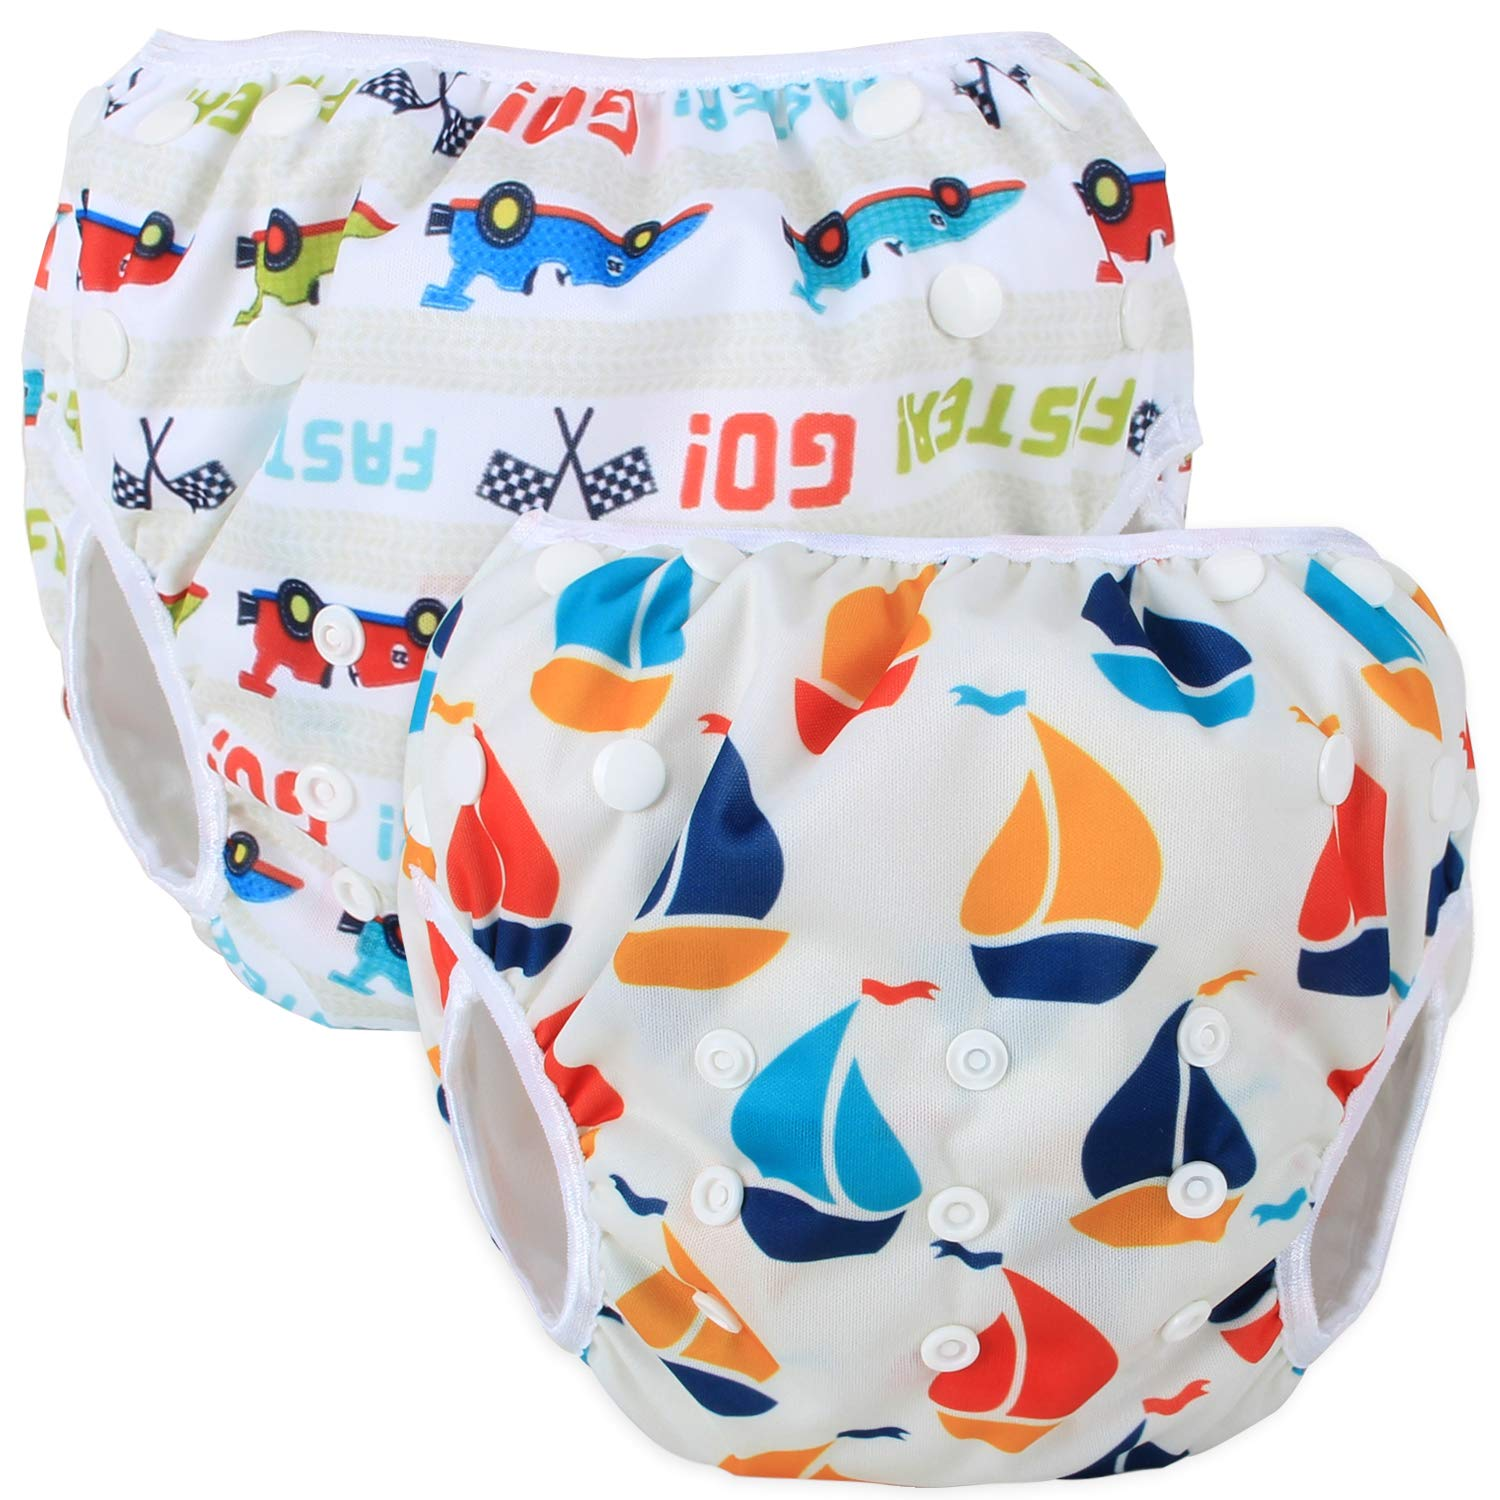 2 Pcs Pack Washable Swimming diapers for Baby Boys /& Girls Ideal for Swimming Lessons//Holiday Teamoy Reusable Swim diapers